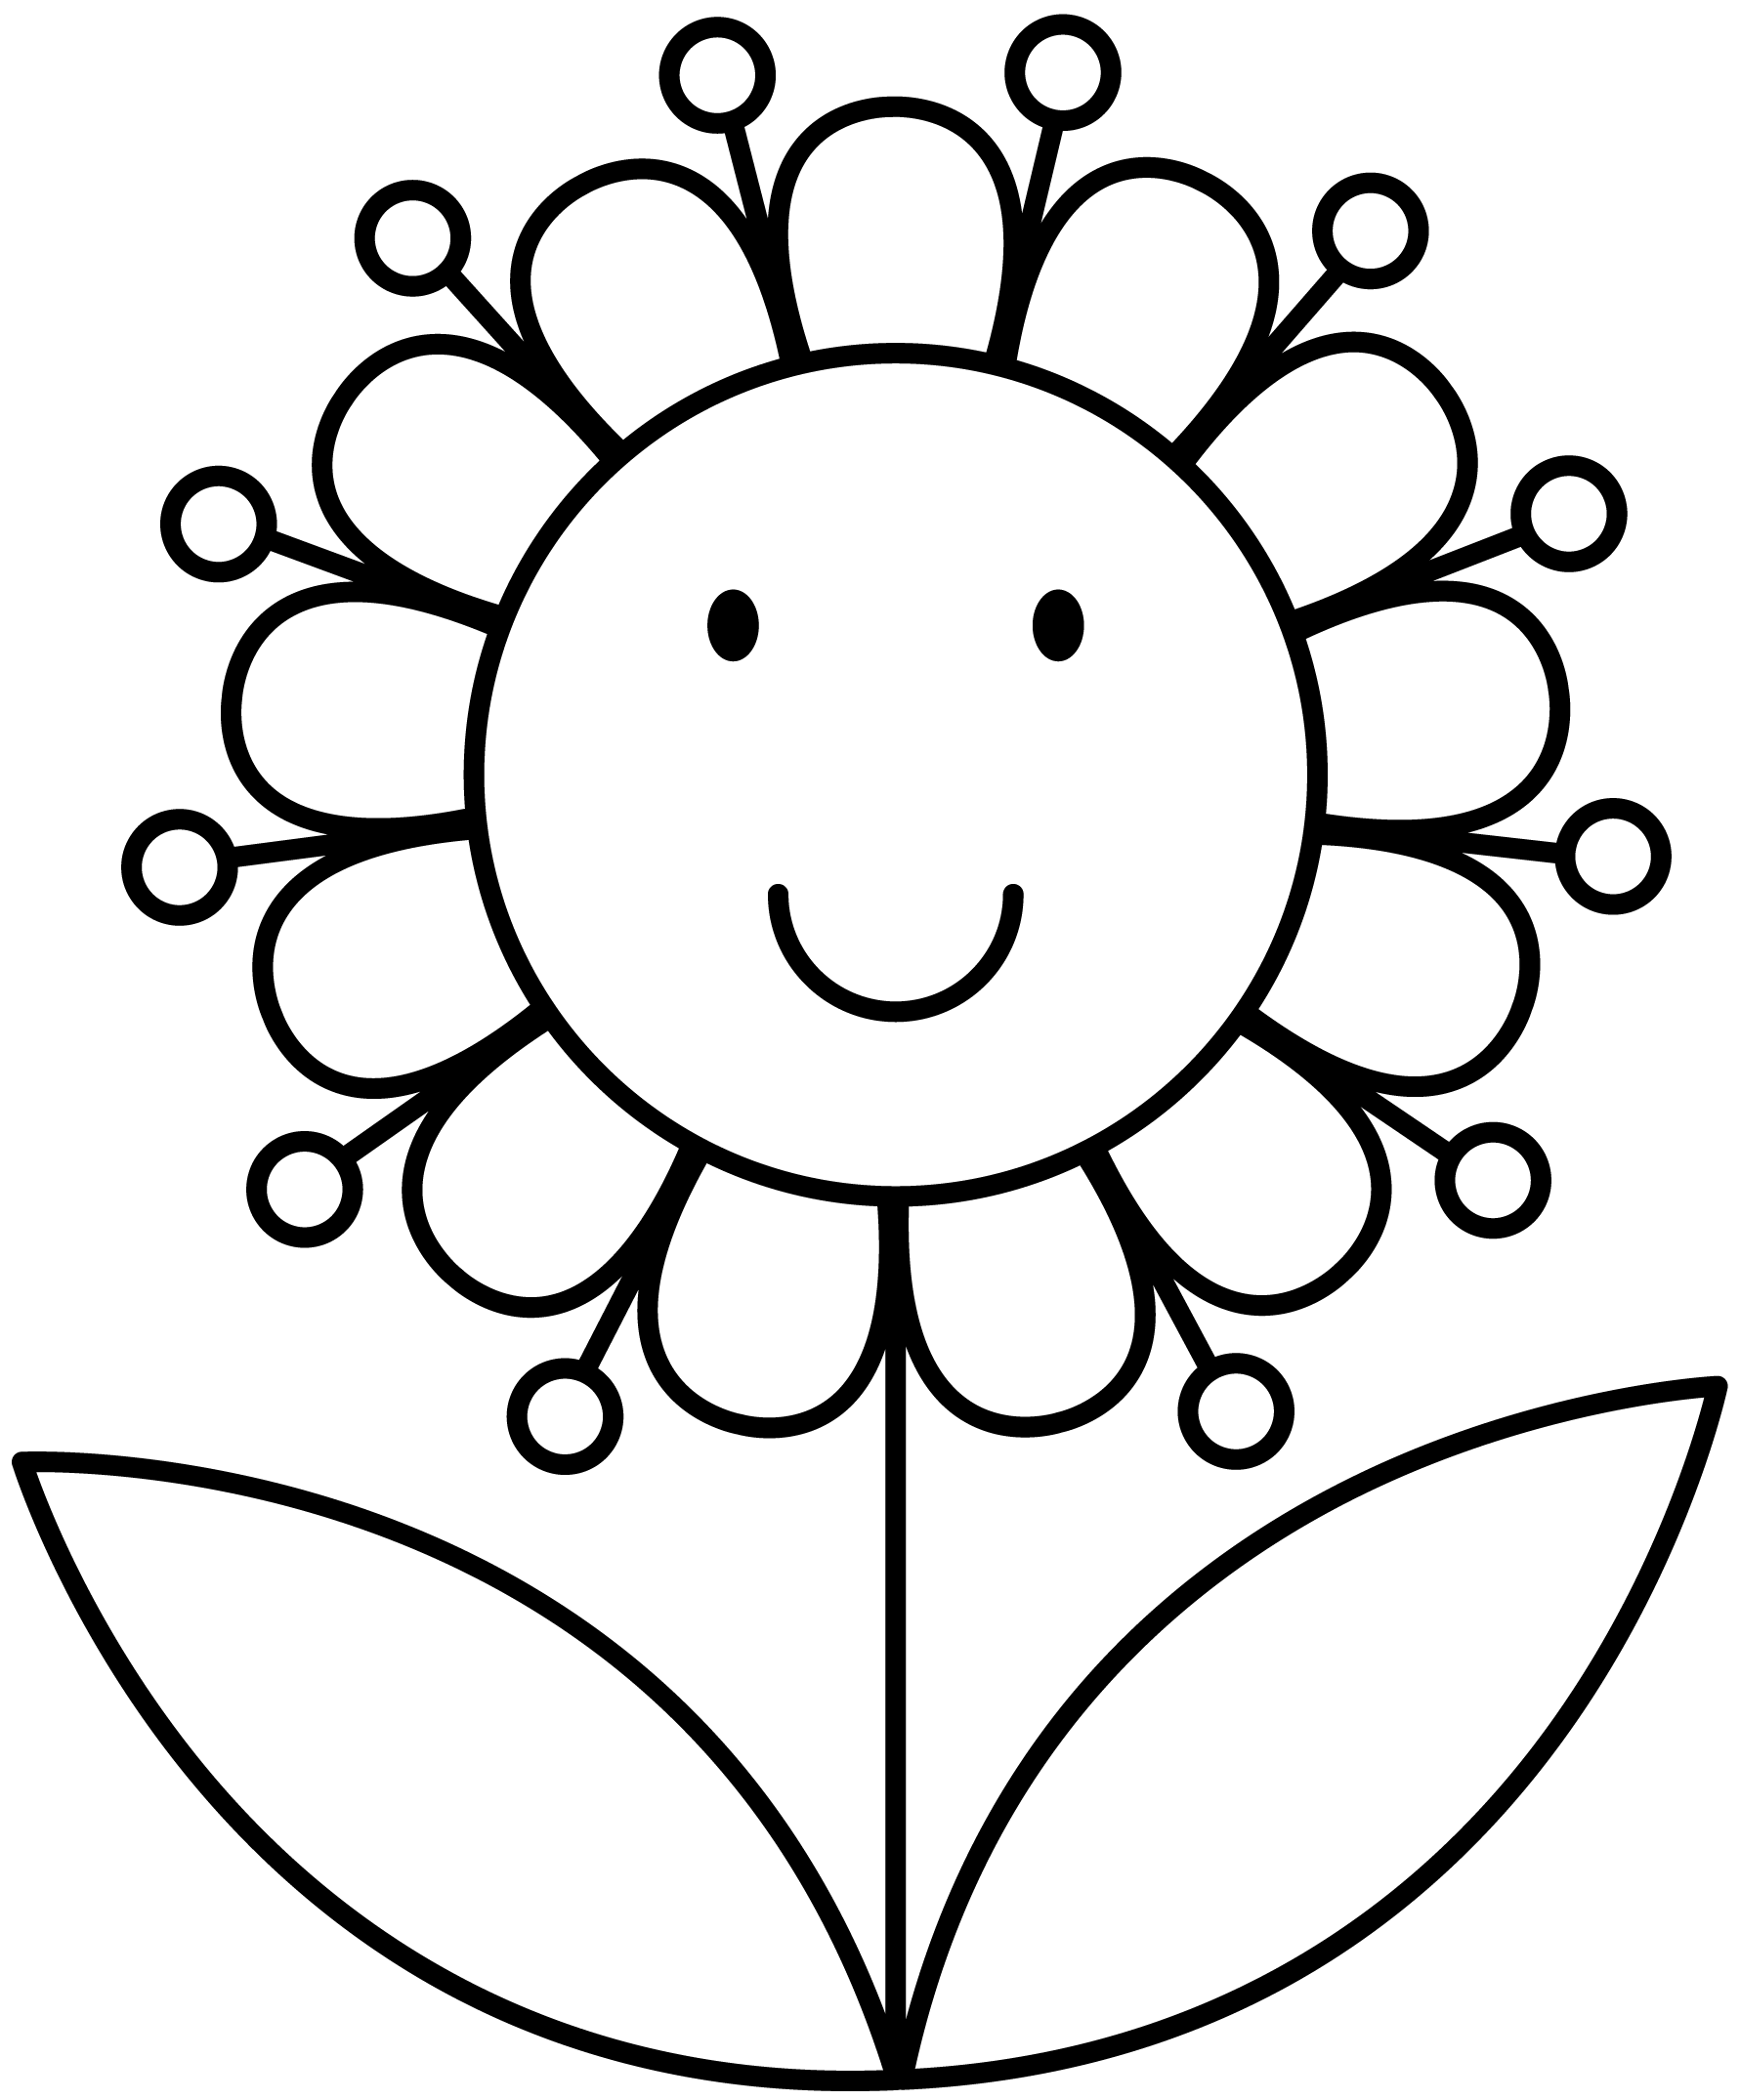 Flower Flower Coloring Pages Spring Coloring Pages Coloring Pages